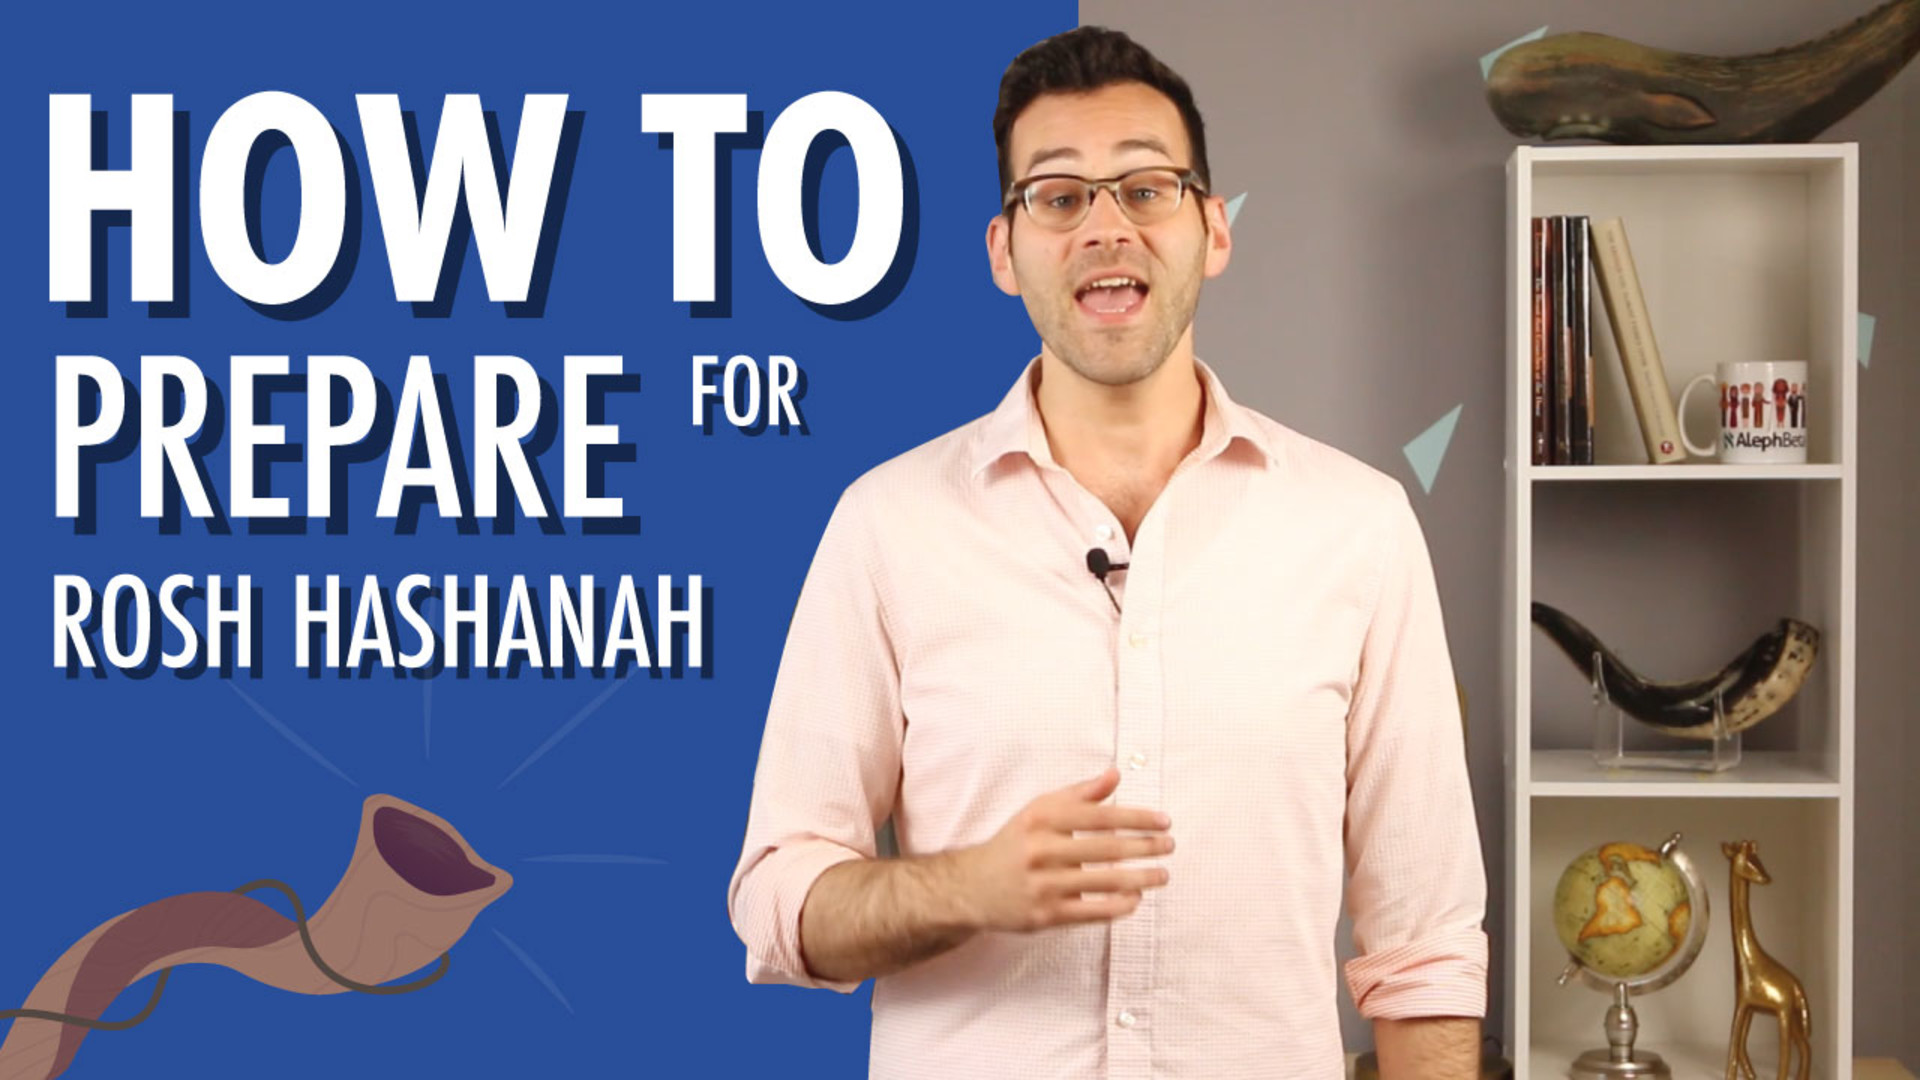 Spiritual preparation for rosh hashanah